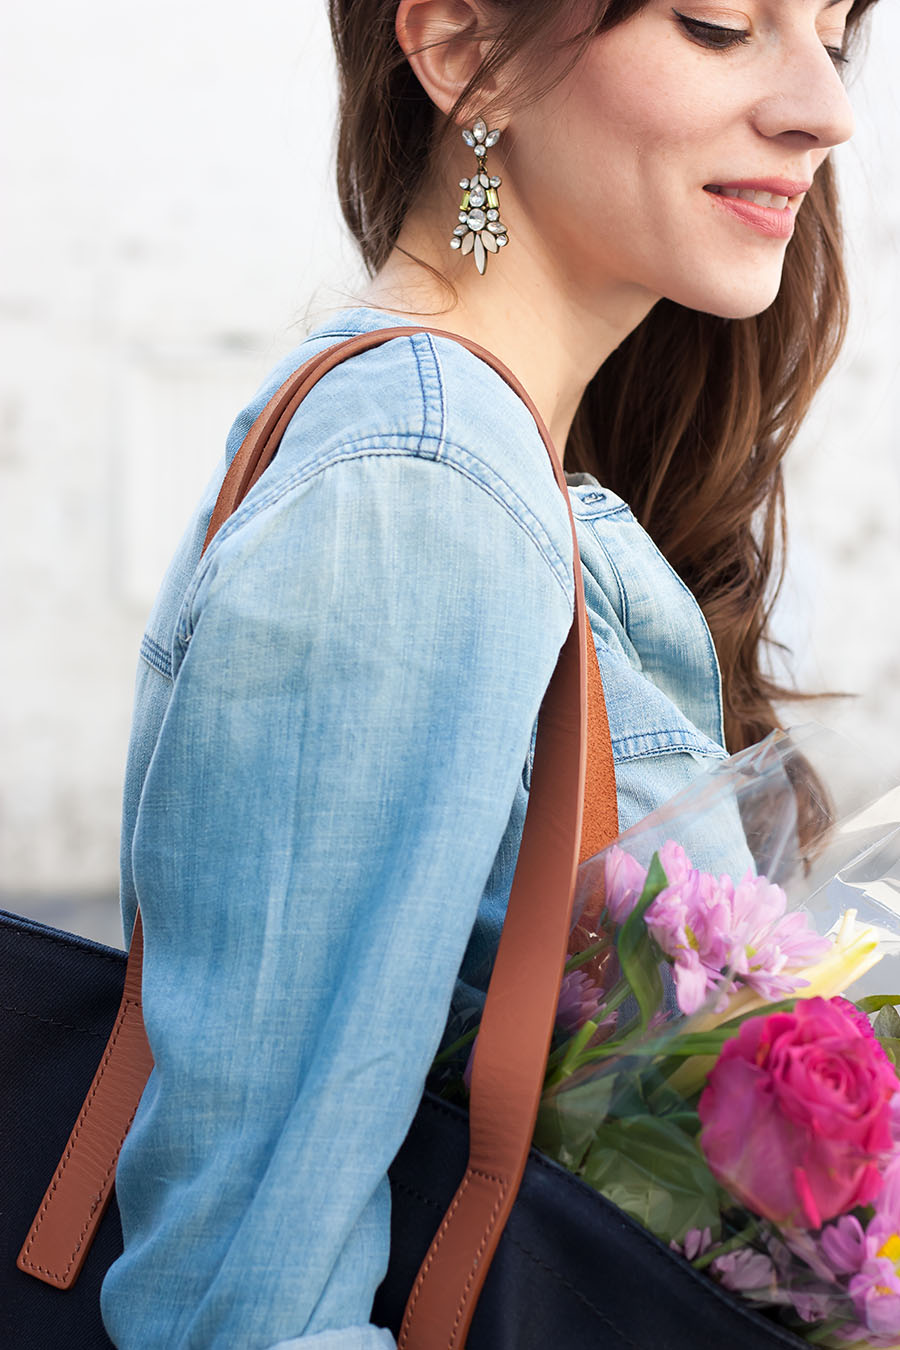 Statement Earrings, Summer Outfit